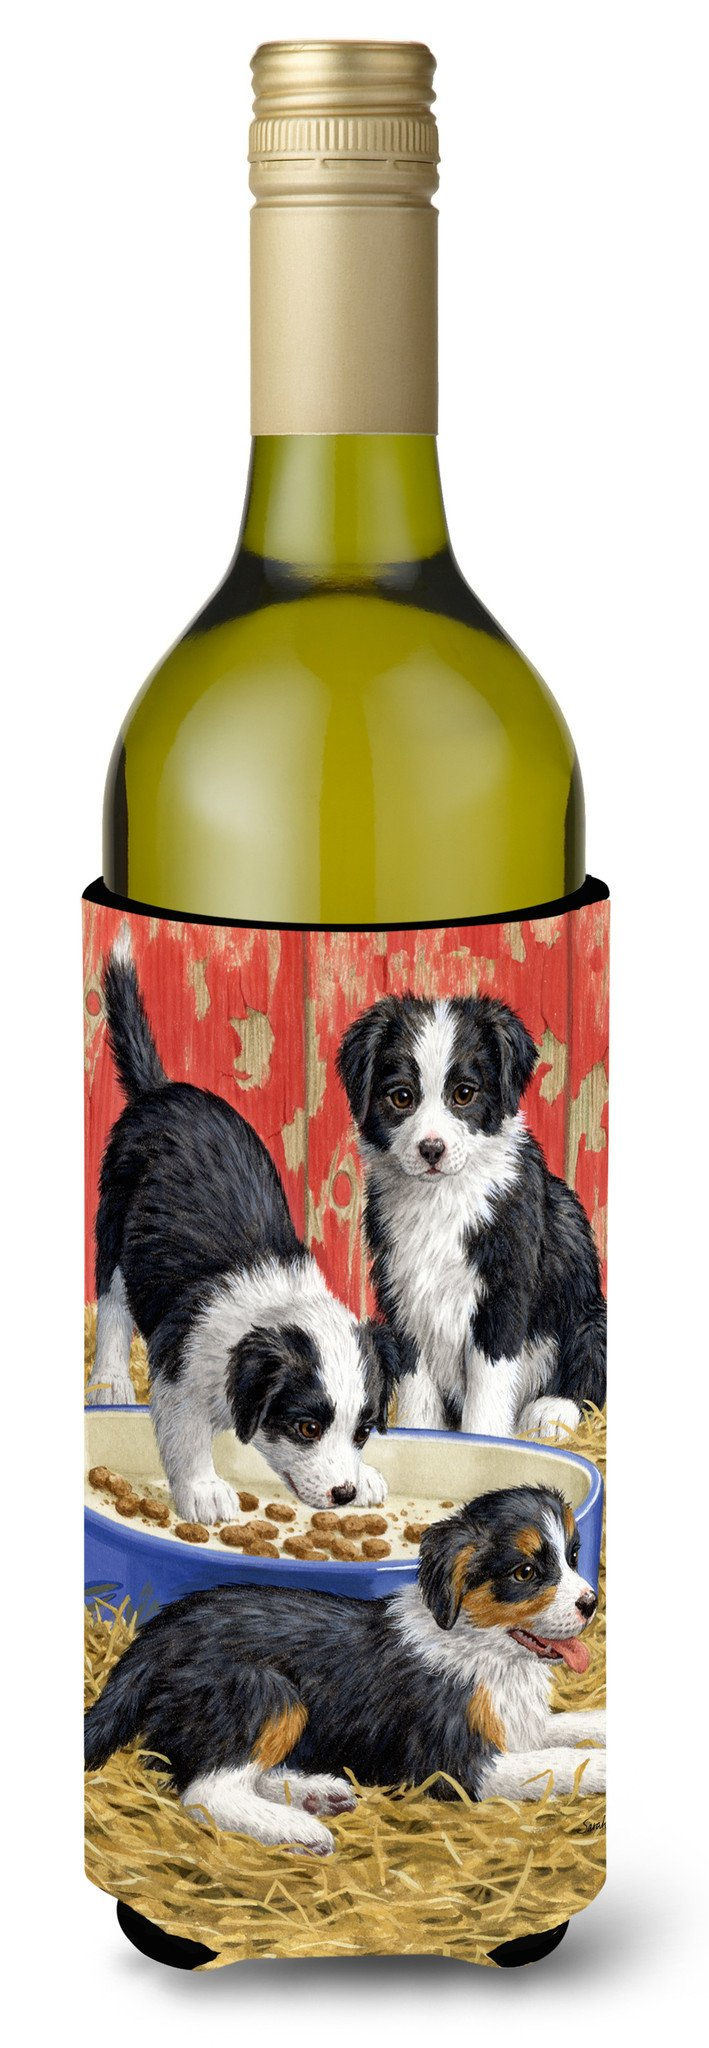 Border Collie Pups Wine Bottle Beverage Insulator Hugger ASA2079LITERK by Caroline's Treasures